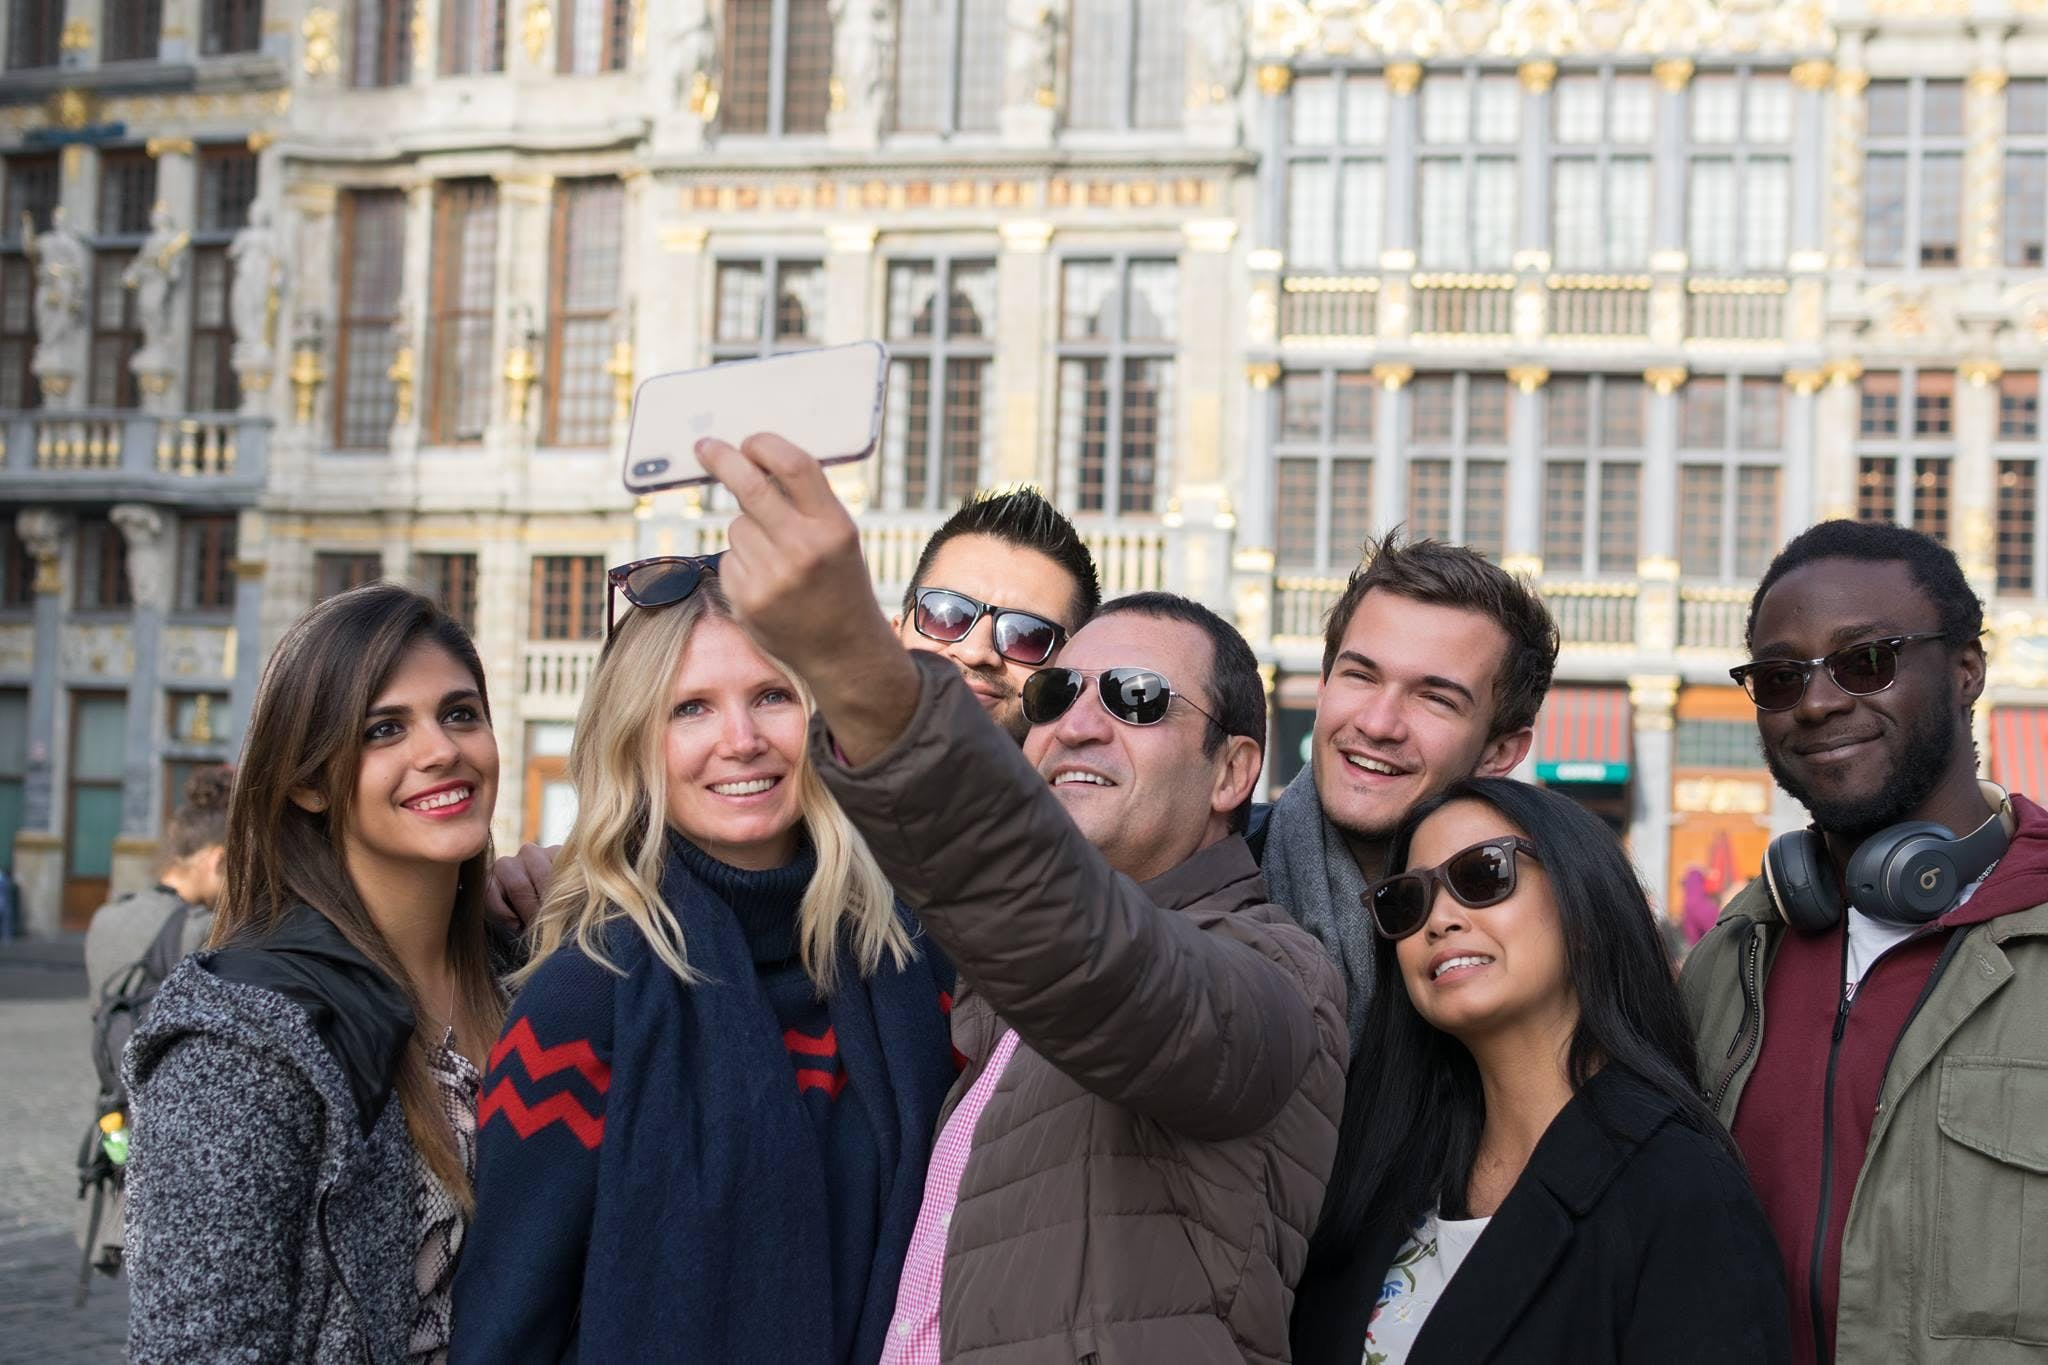 Free walking tour of Brussels - 10:30 am